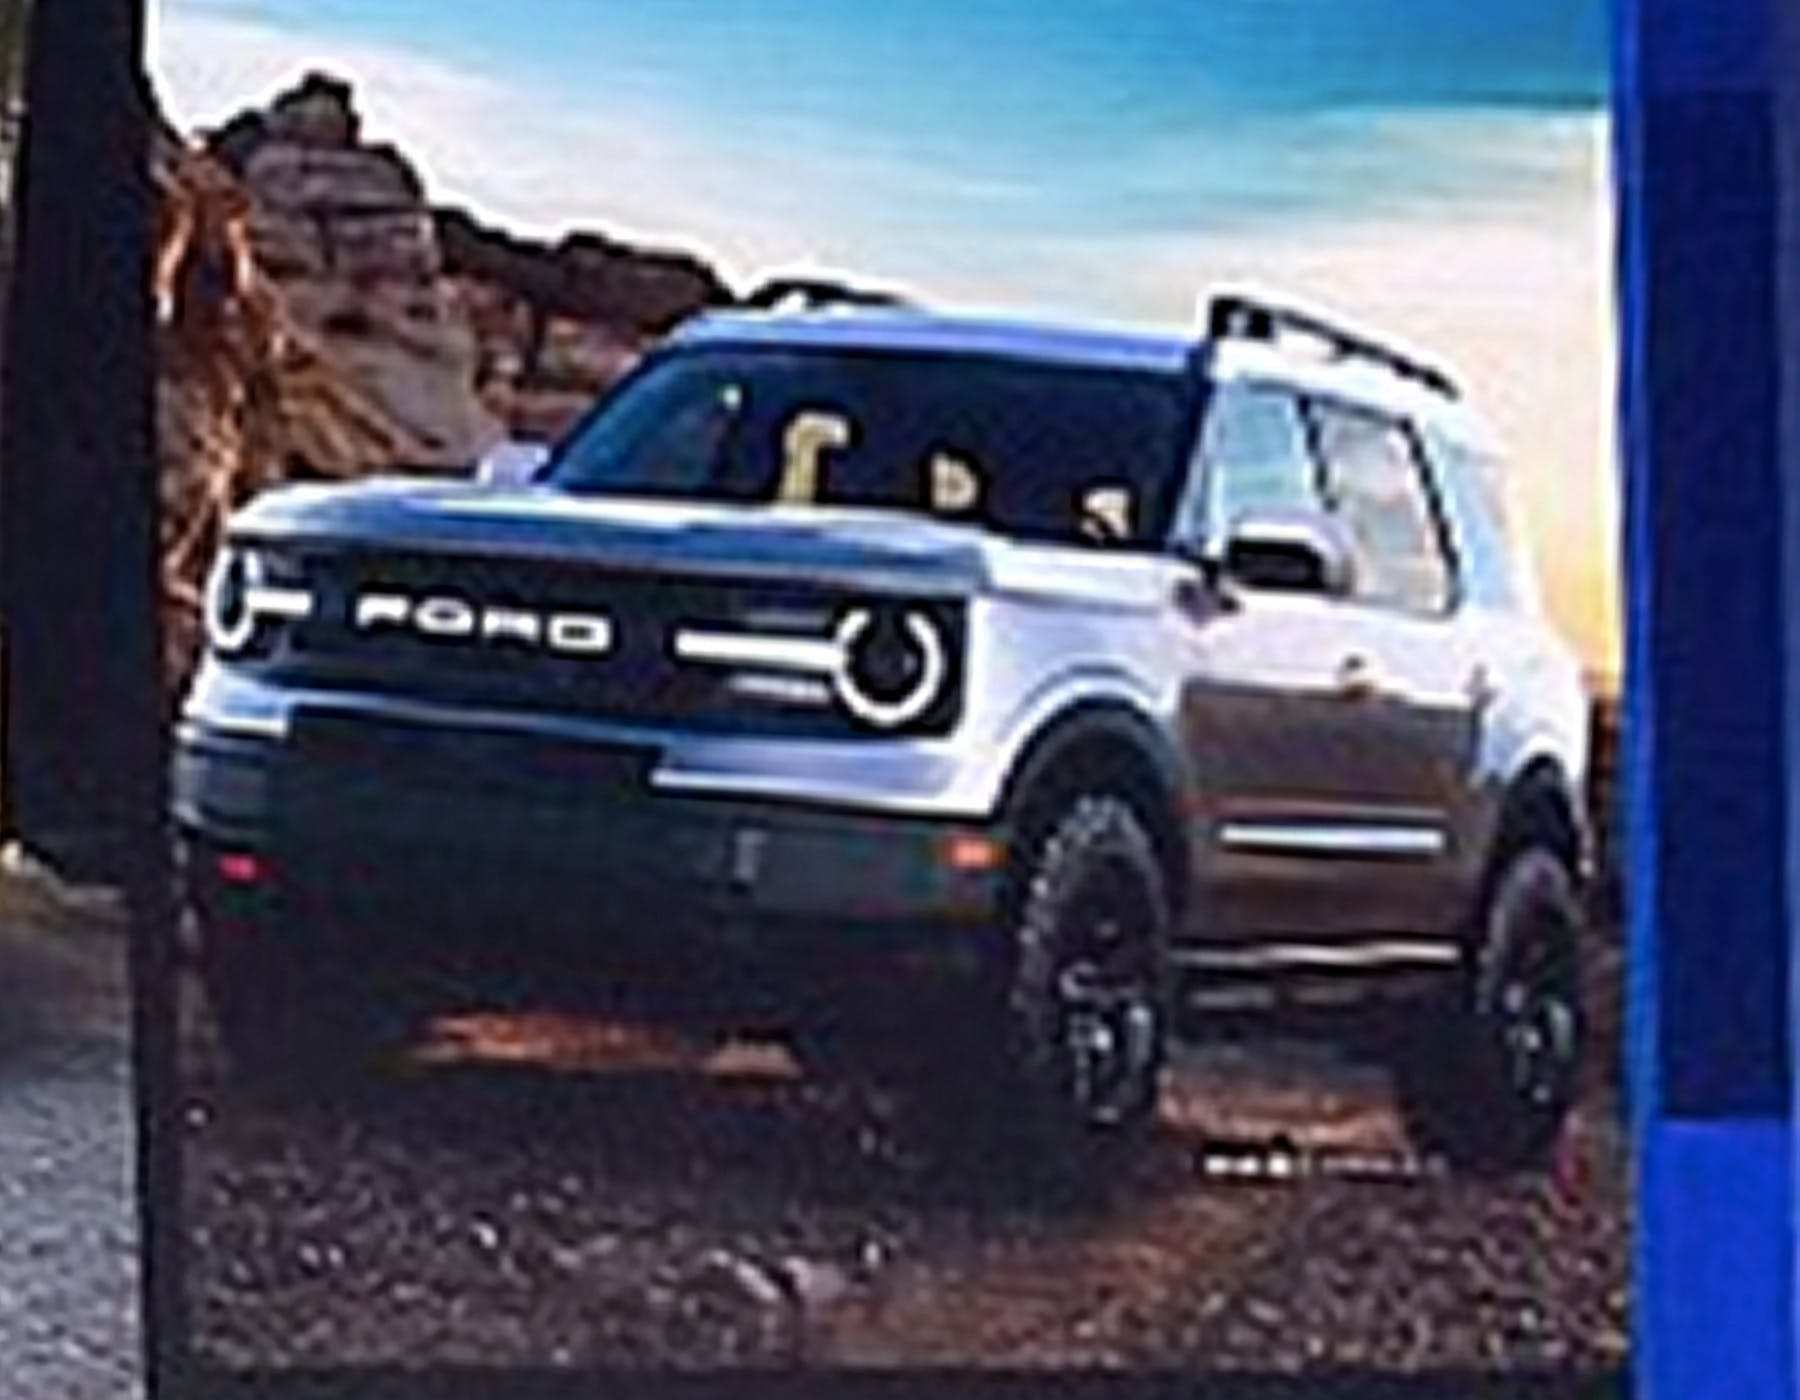 54 All New 2020 Ford Bronco Leaked Images for 2020 Ford Bronco Leaked